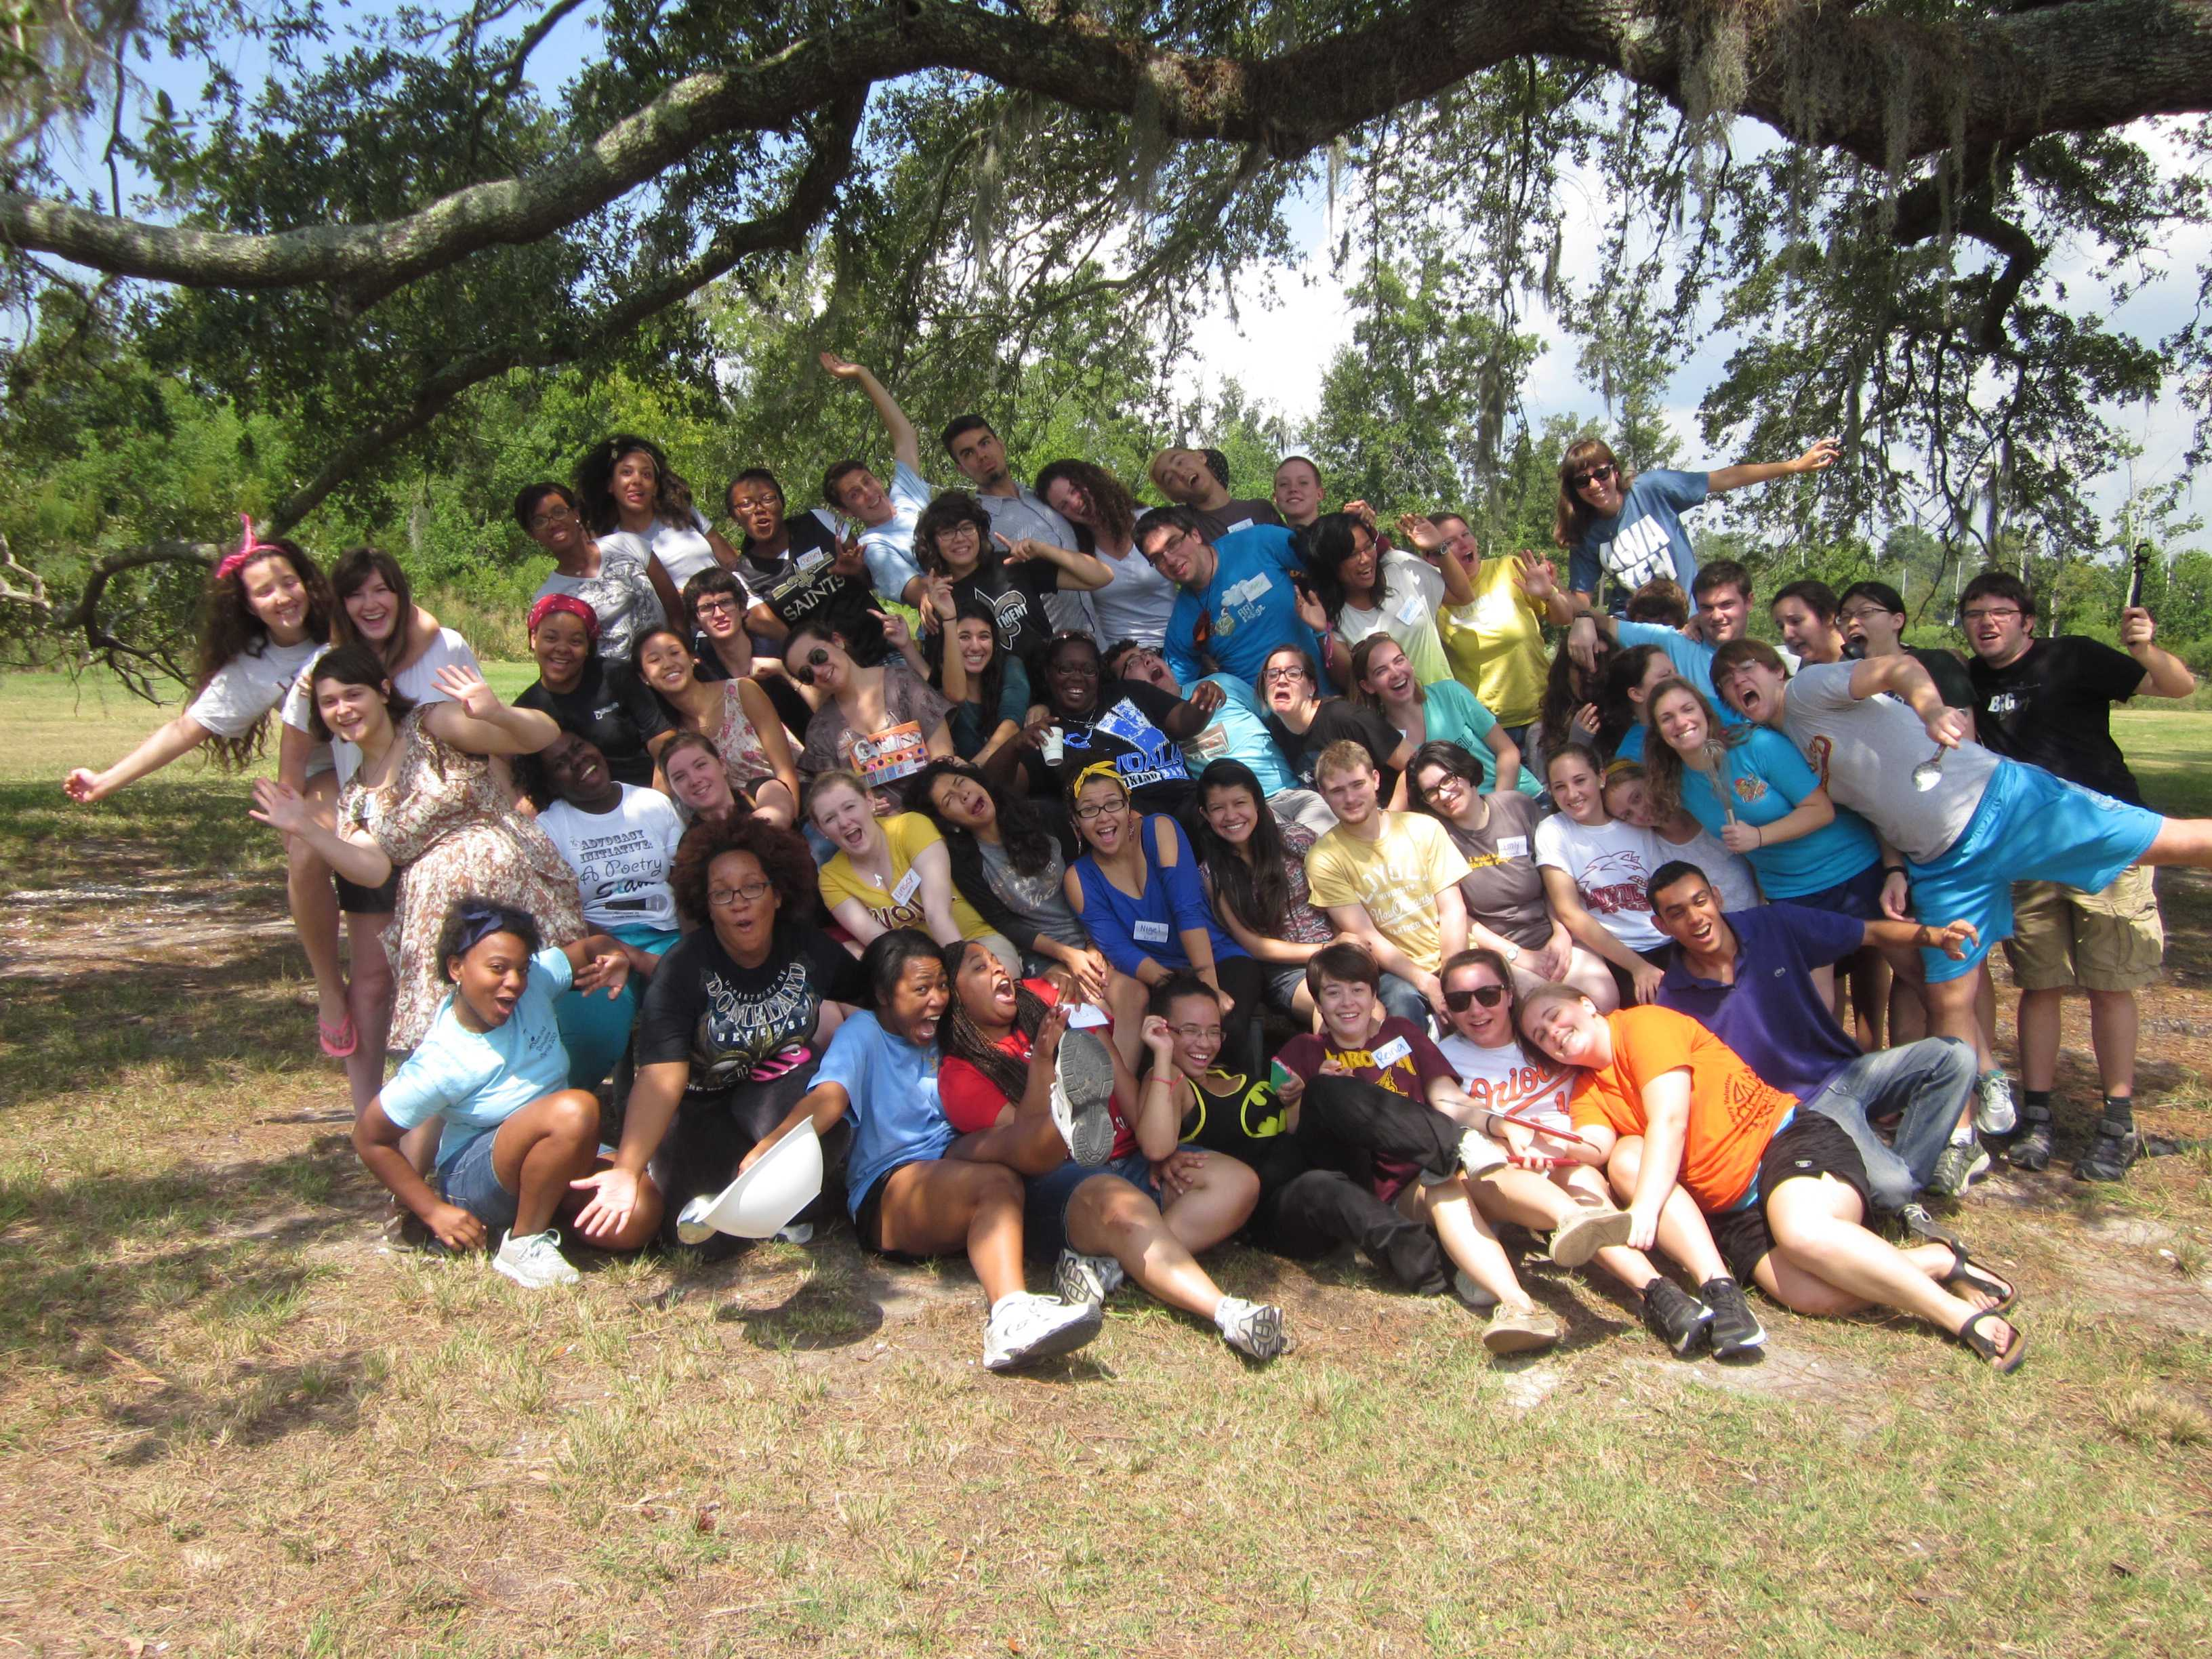 Freshmen and seniors from last year's first-year retreat pose for a photo at the Fountainbleau State Park. This year, the retreat will be held at the same location.